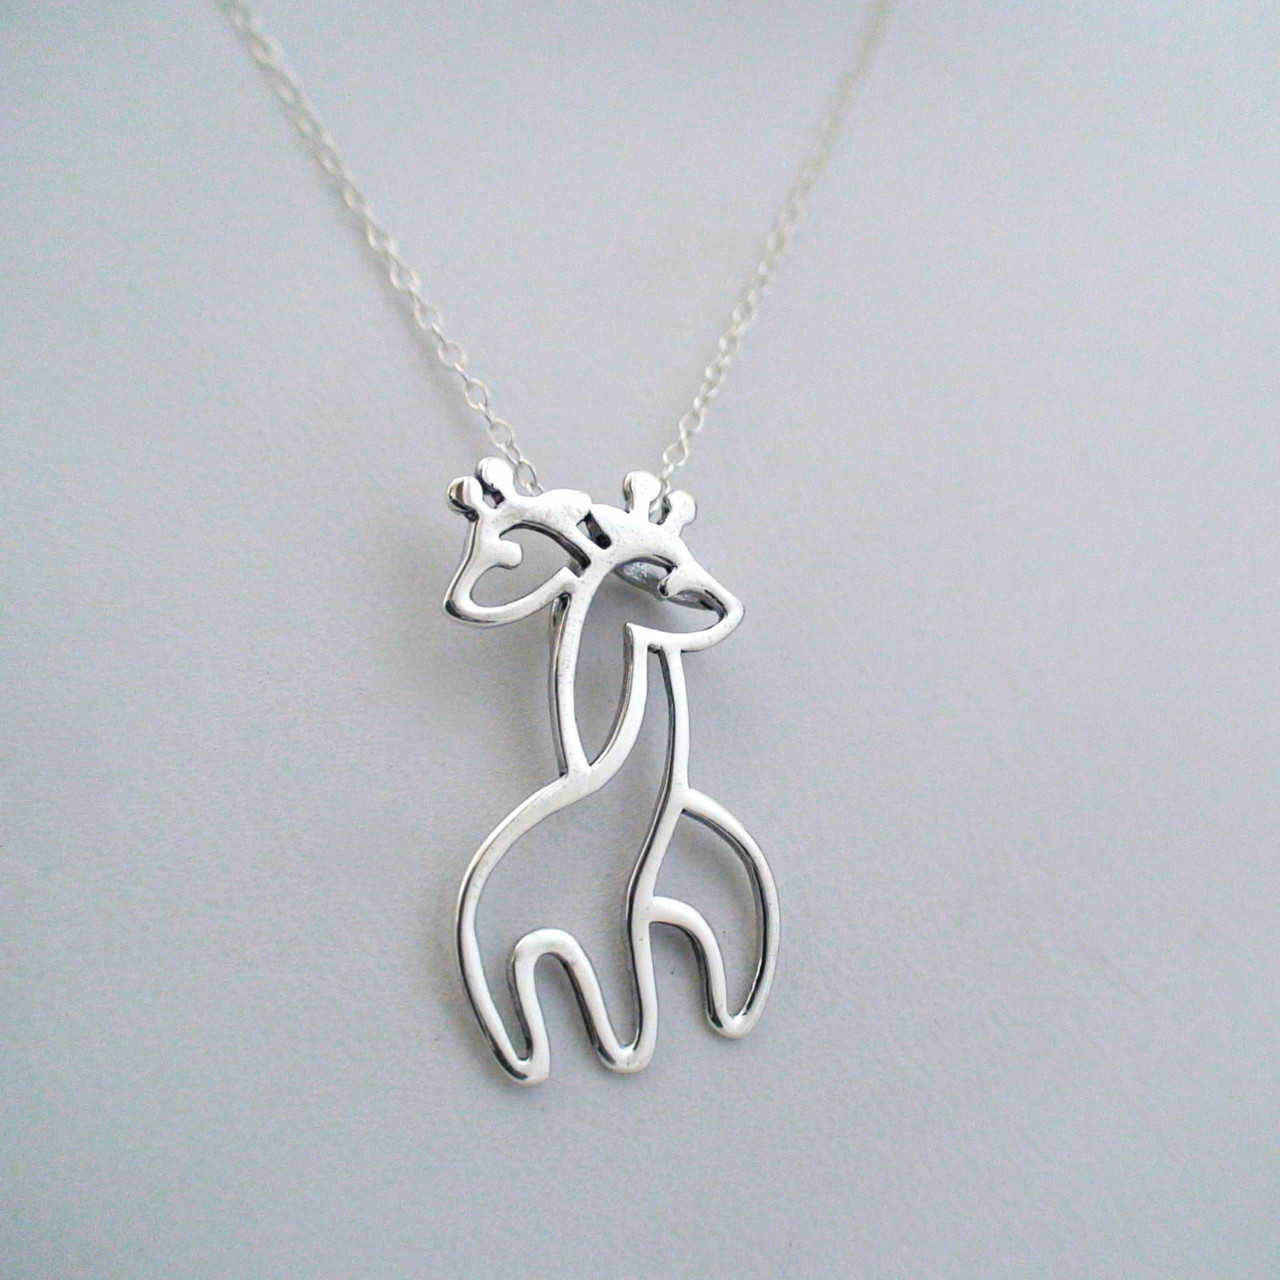 model out on the giraffe shown necklace from chain charm pendant silver crowd sterling stand